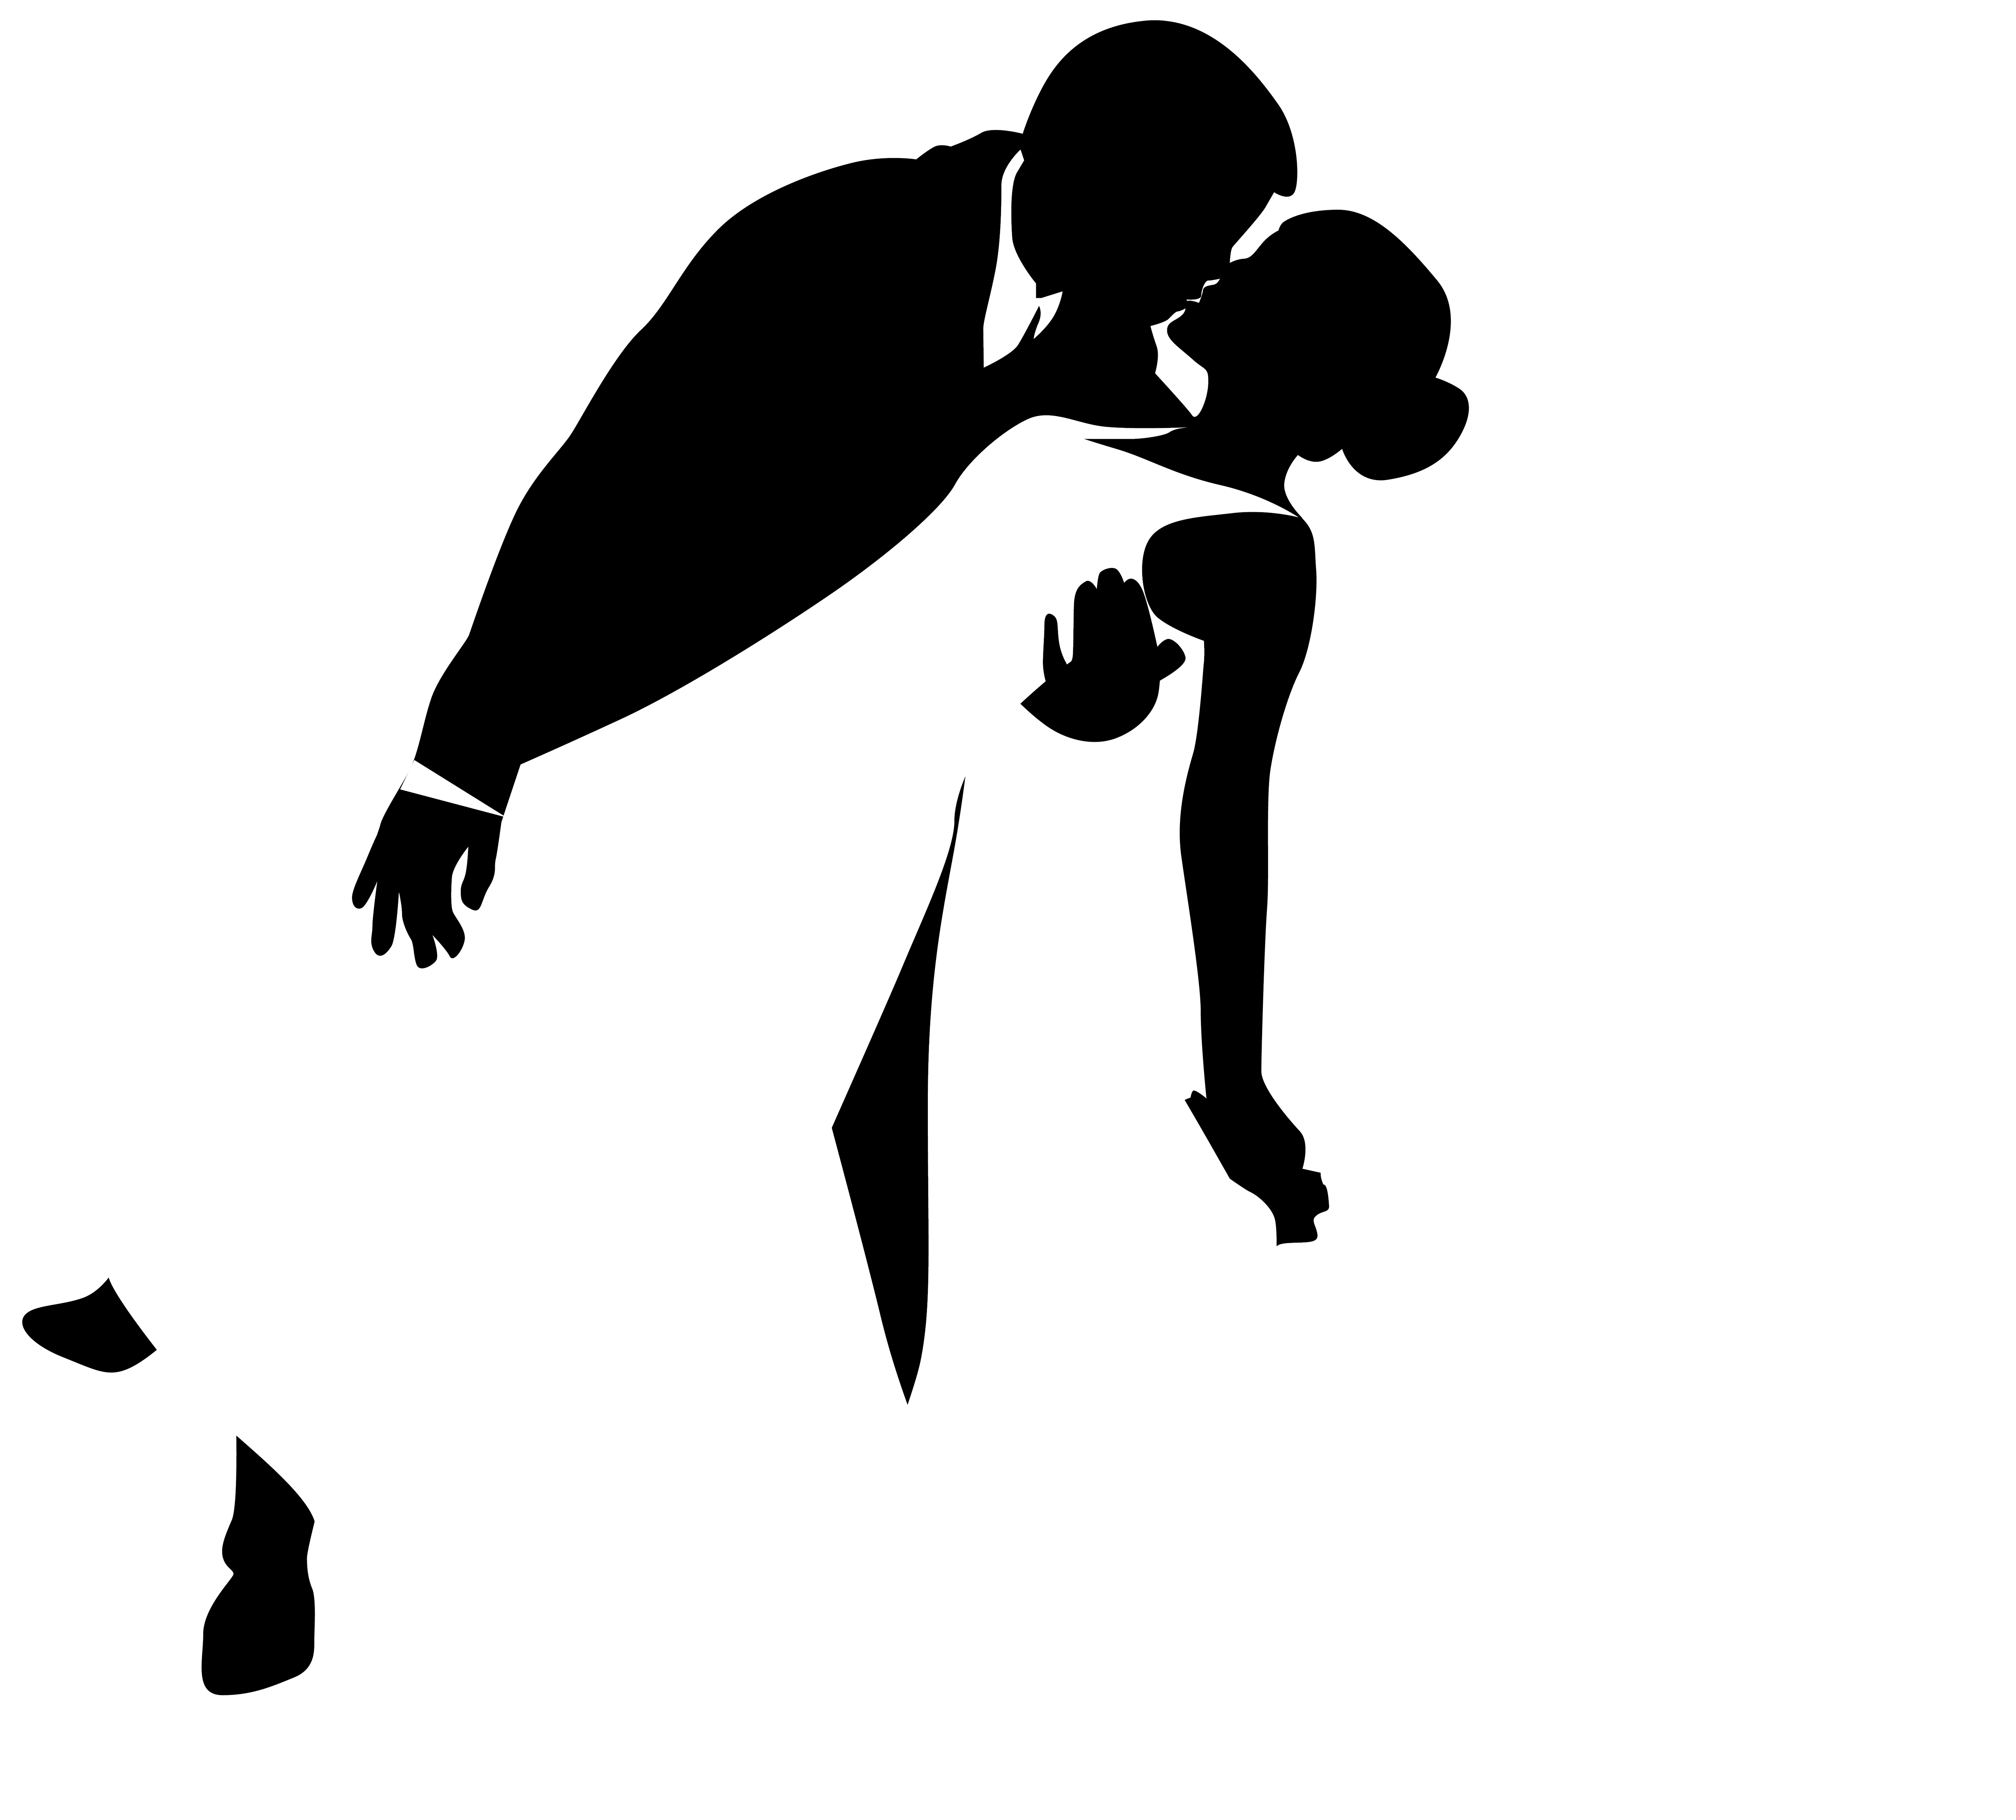 Wedding silhouette images at getdrawings free for personal use 4984x4500 kissing bridal silhouettes png clip art junglespirit Gallery